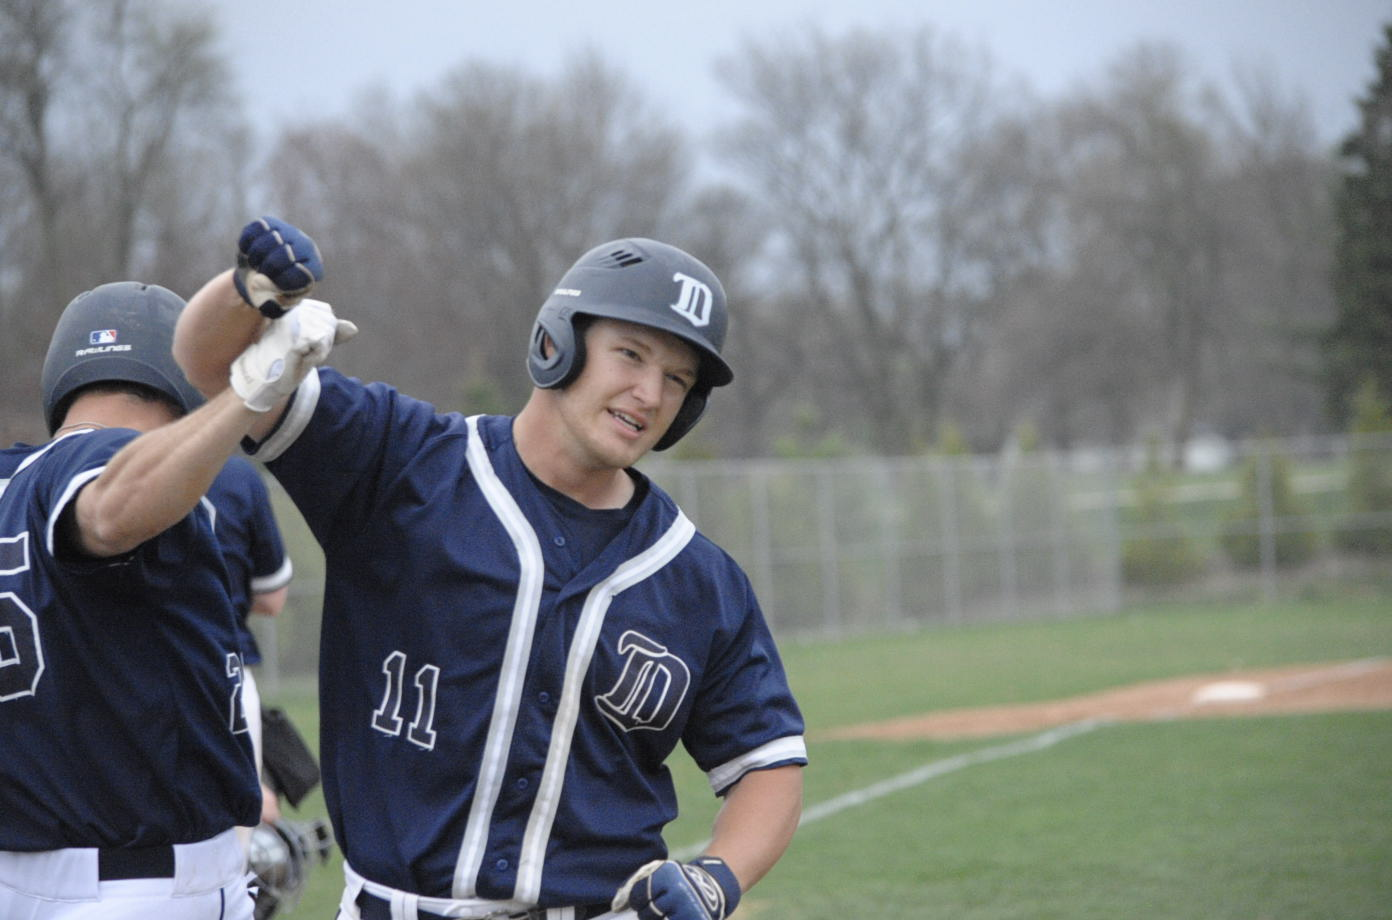 Matt Krambeck celebrates after home run